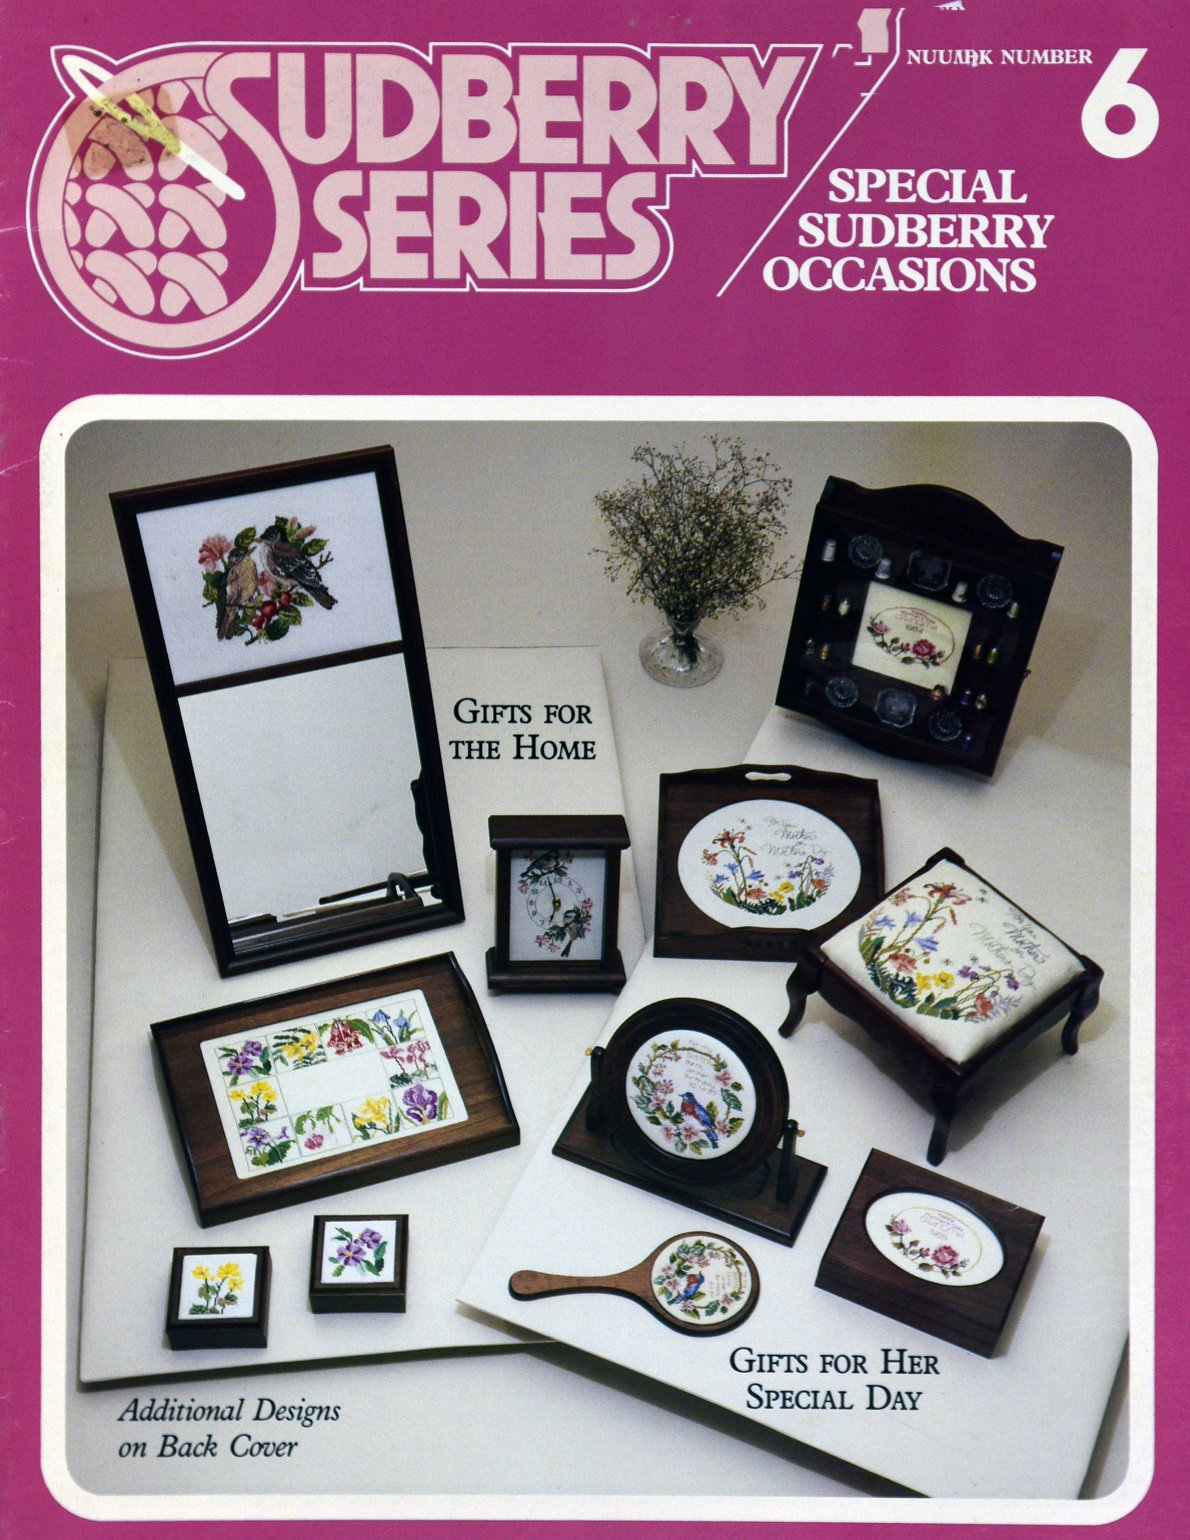 Special Sudberry Occasions:  SUD